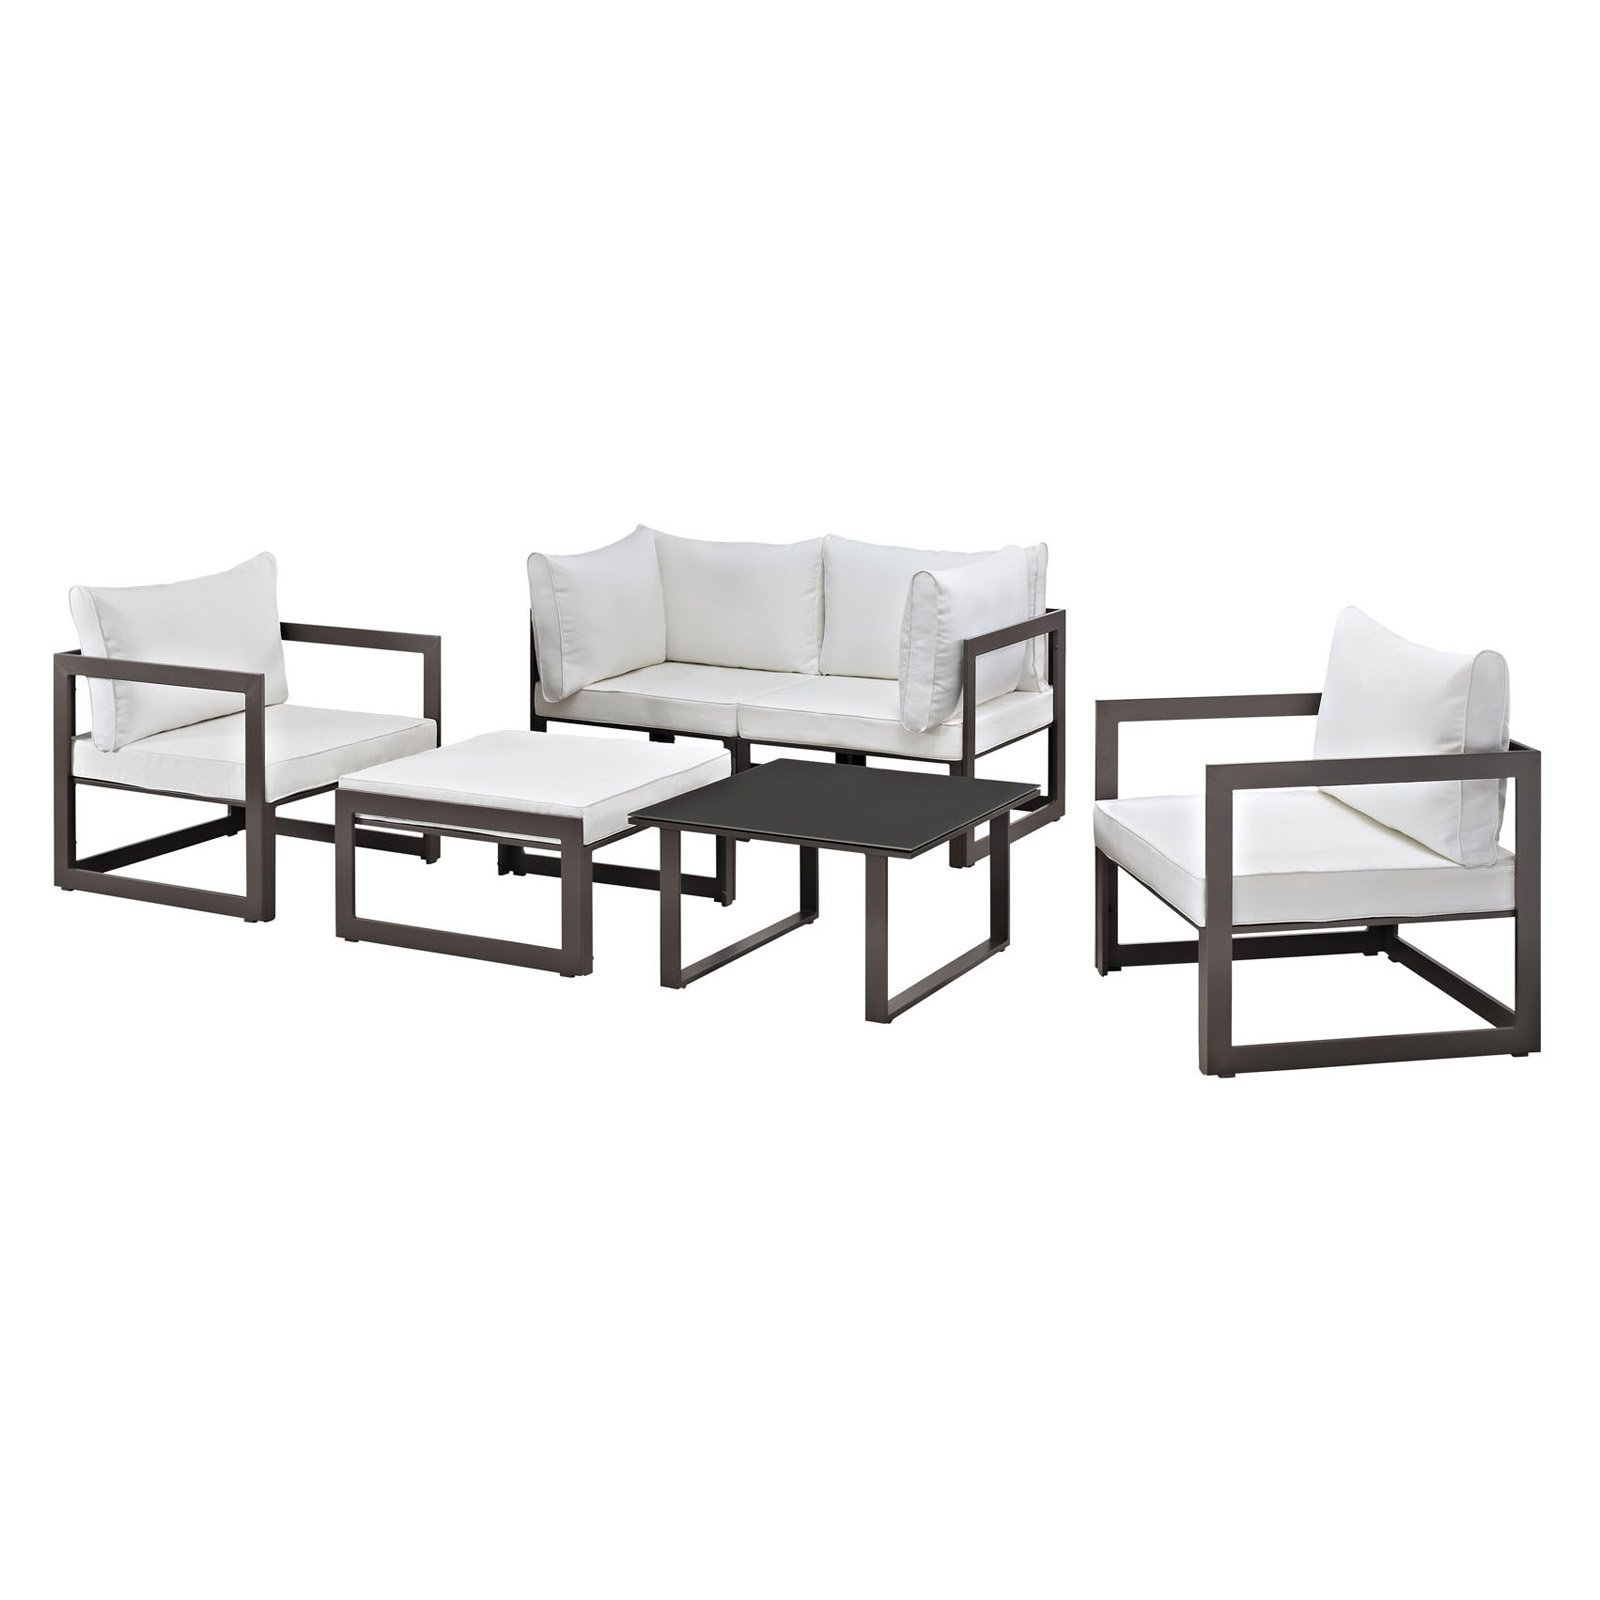 Modway Fortuna 6 Piece Outdoor Patio Sectional Sofa Set, Multiple Colors